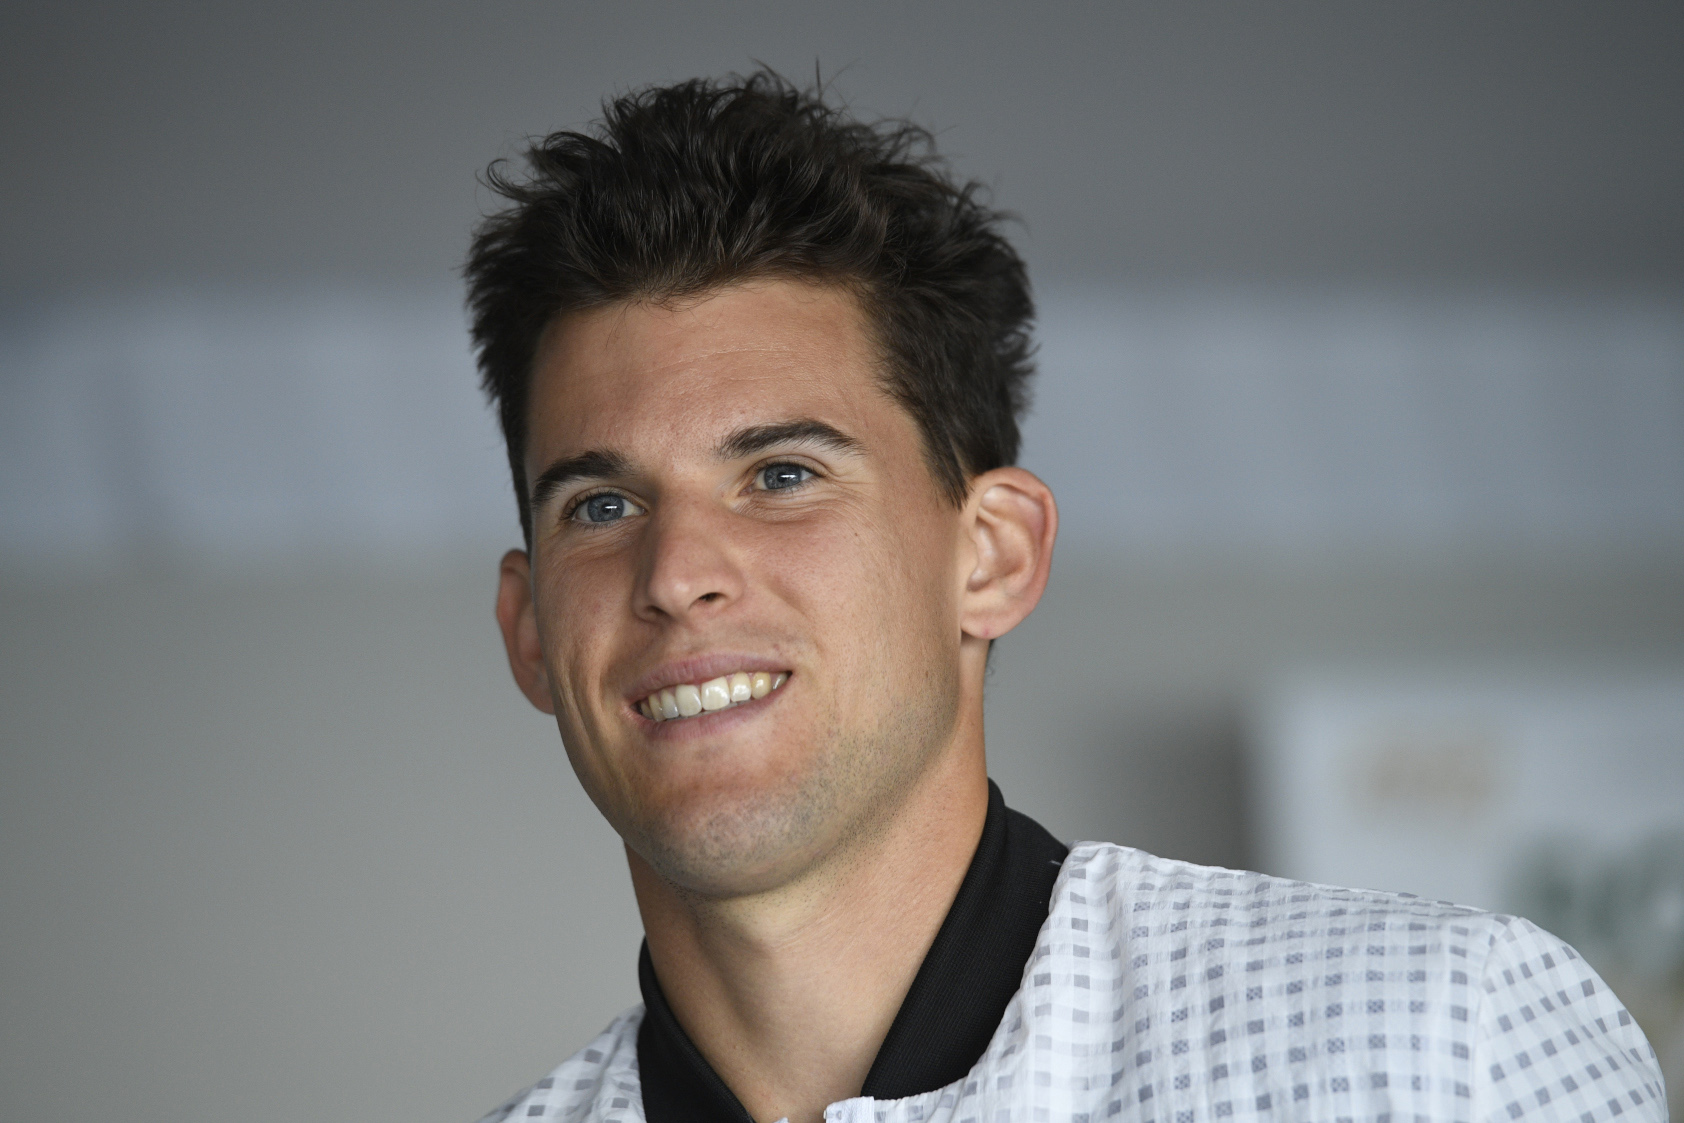 Dominic Thiem smiling during the media day at the 2019 Rolex Monte-Carlo Masters.